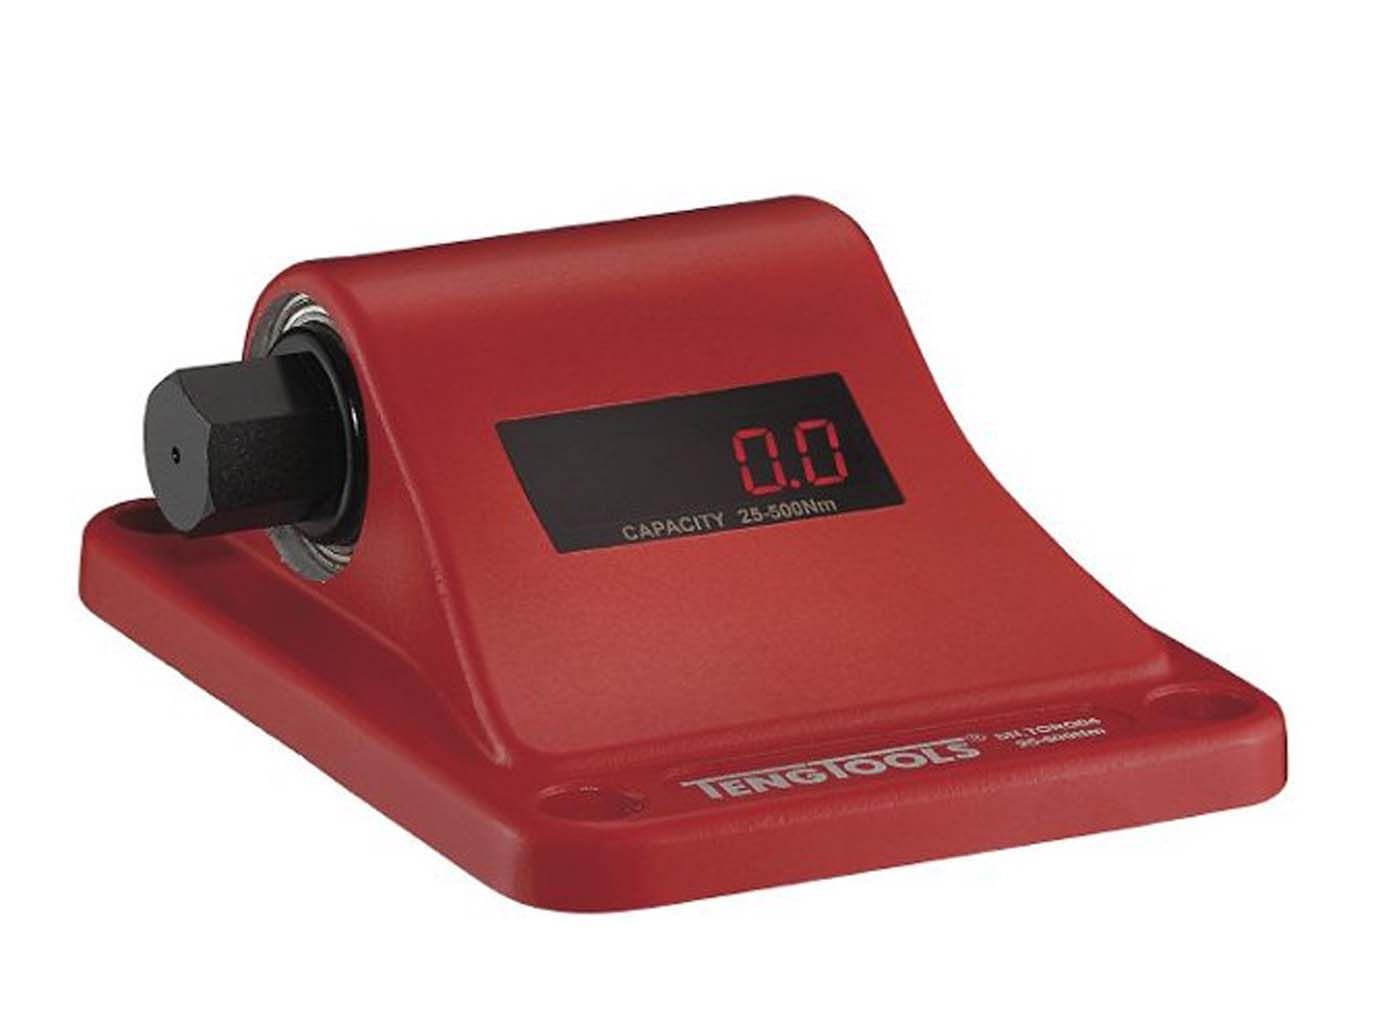 Teng Tools 50-1000Nm Digital Torque Tester